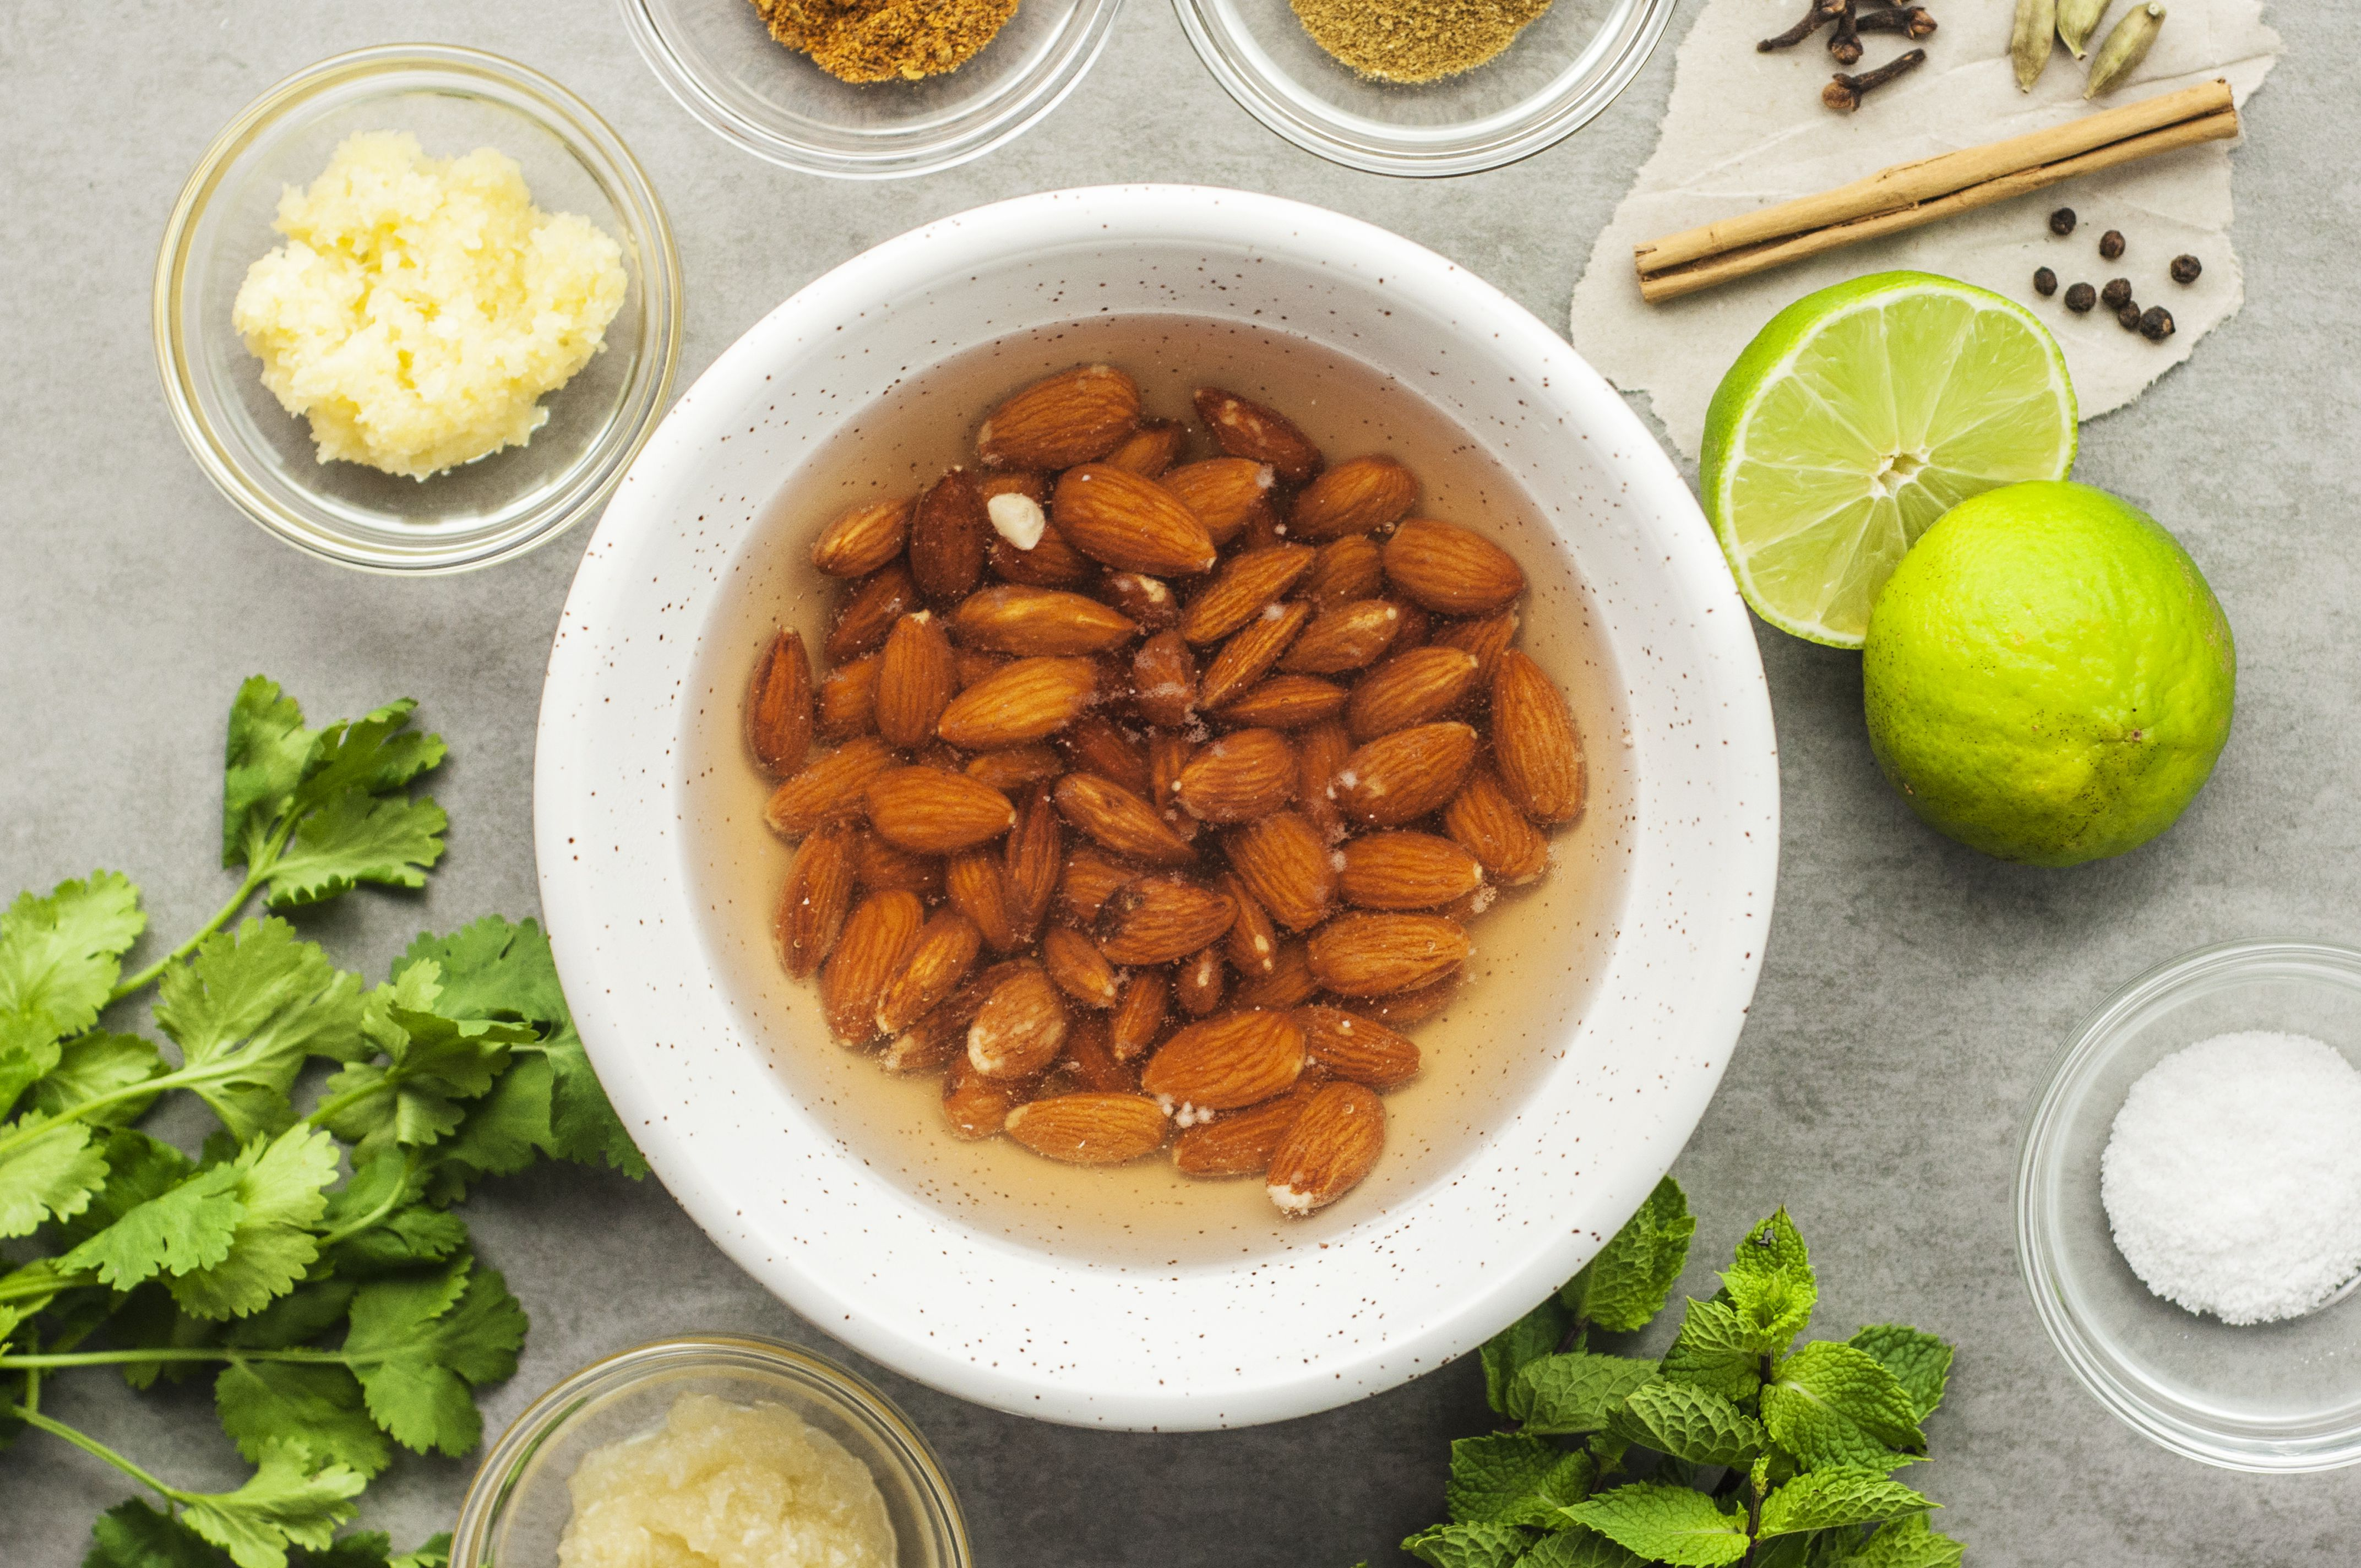 Add almonds to bowl with water